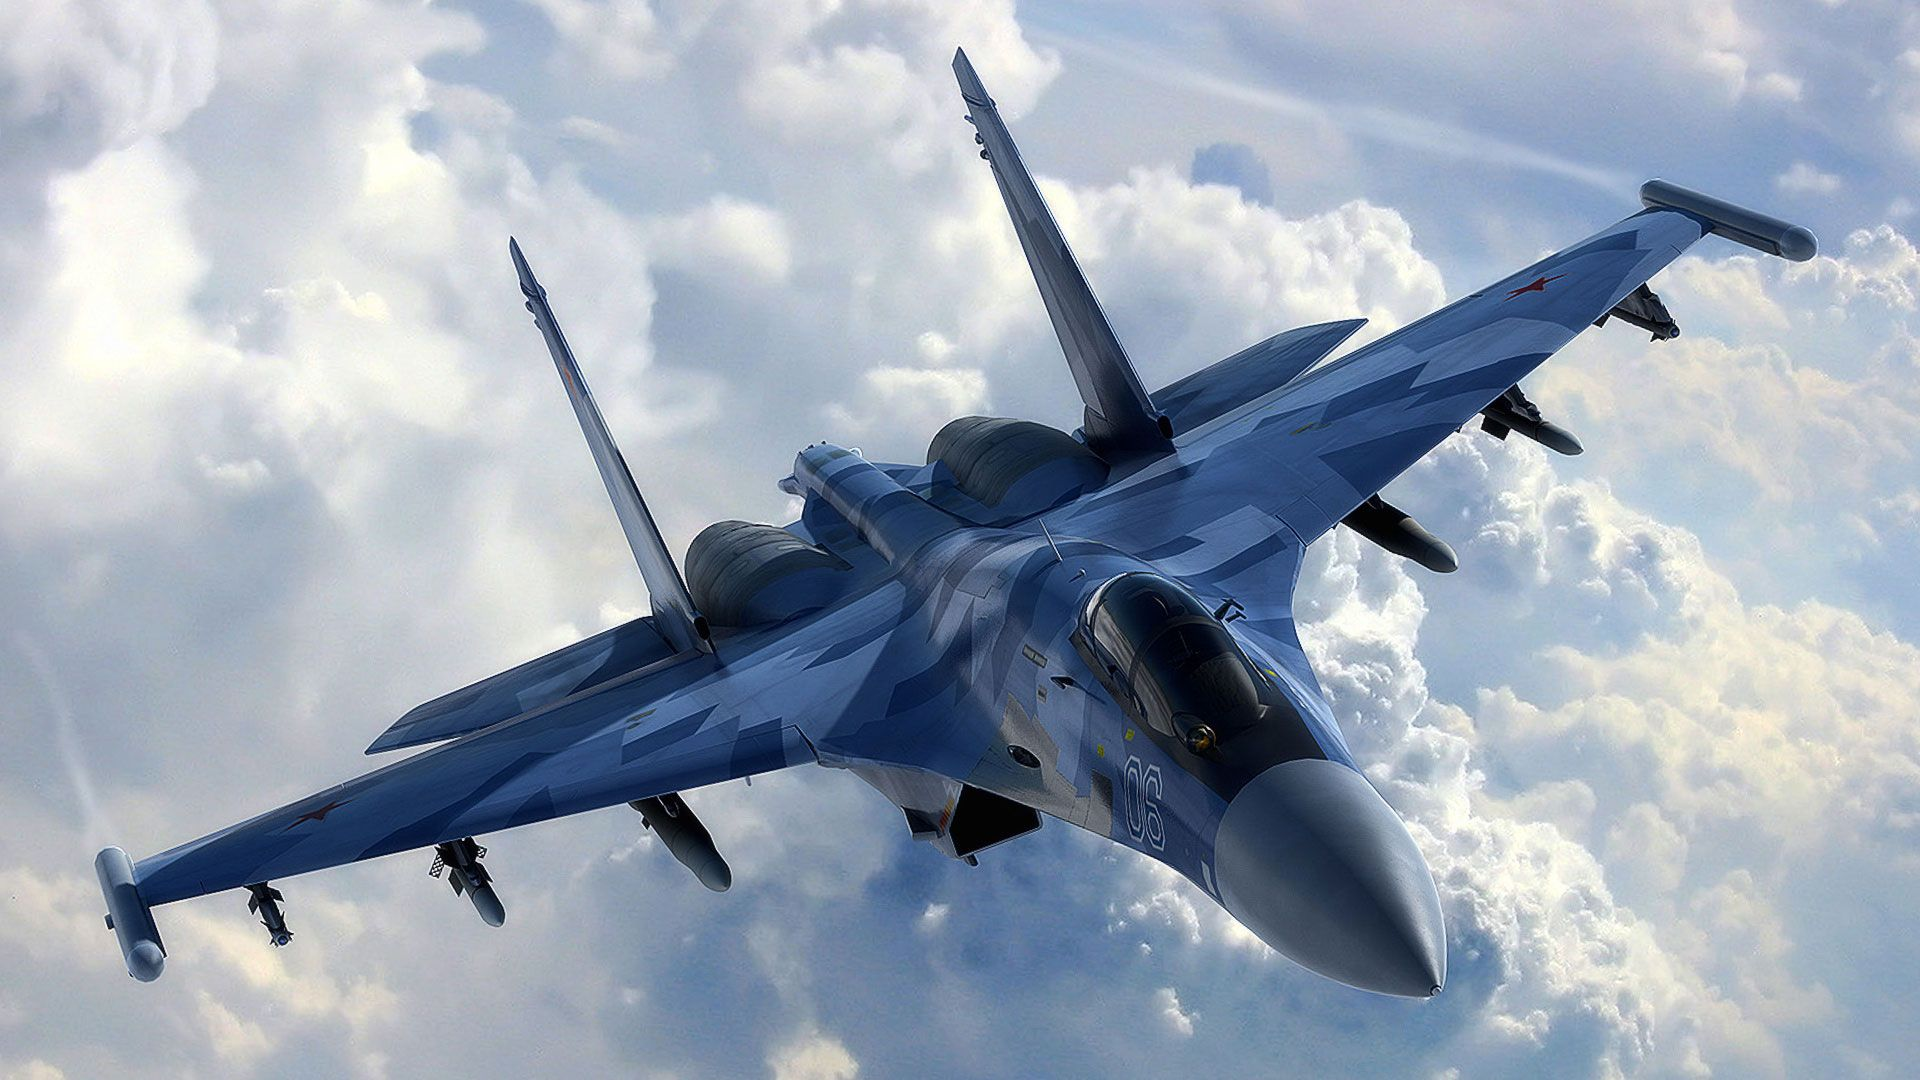 cool Jet Fighter Wallpapers Fighter jets, Russian